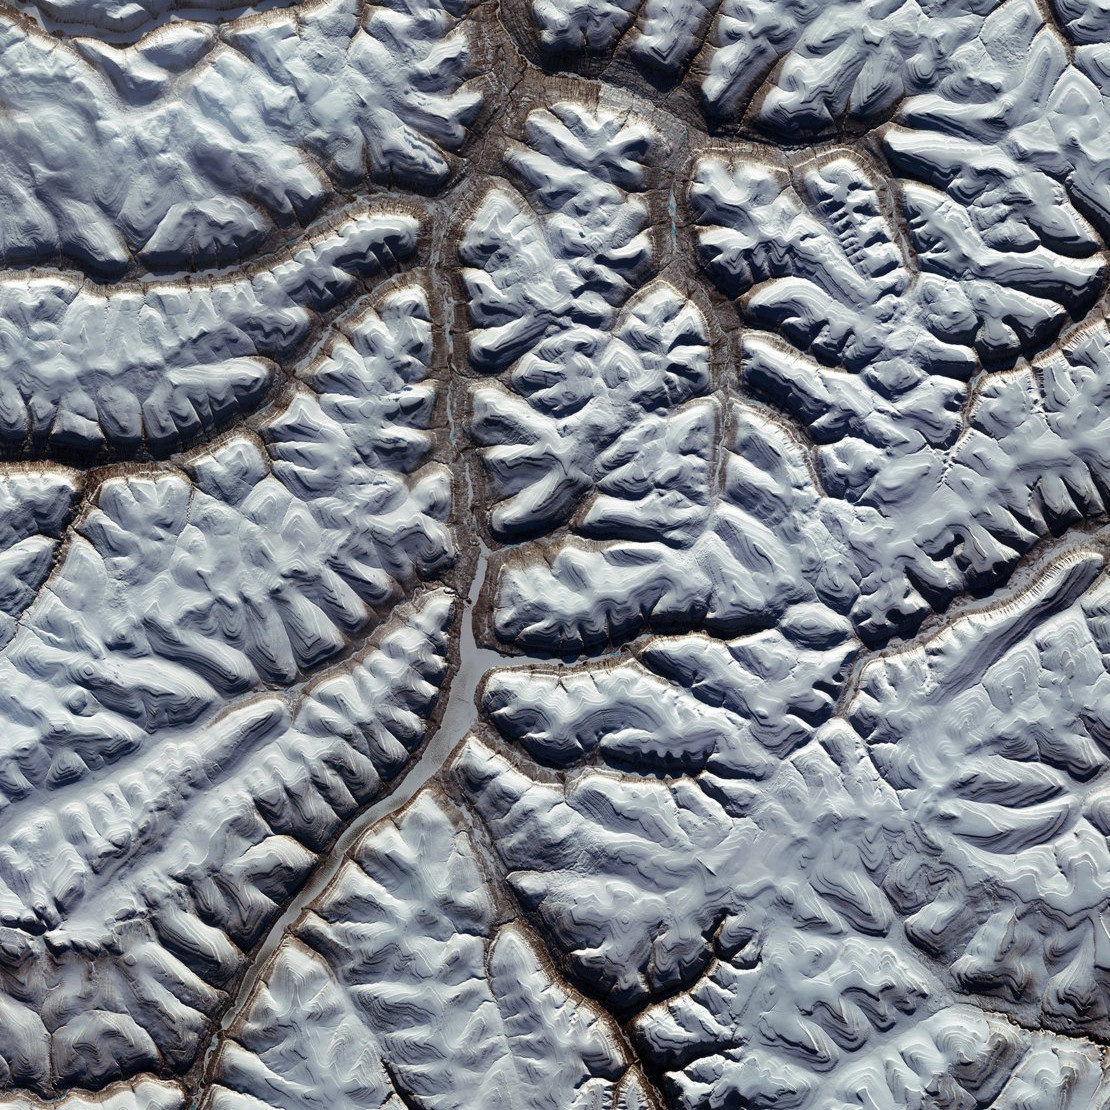 When flipped upside-down, our brains interpret this Sentinel-2A images correctly, and the lake appears as a depression while the flat-topped hills pop out. Credit: ESA